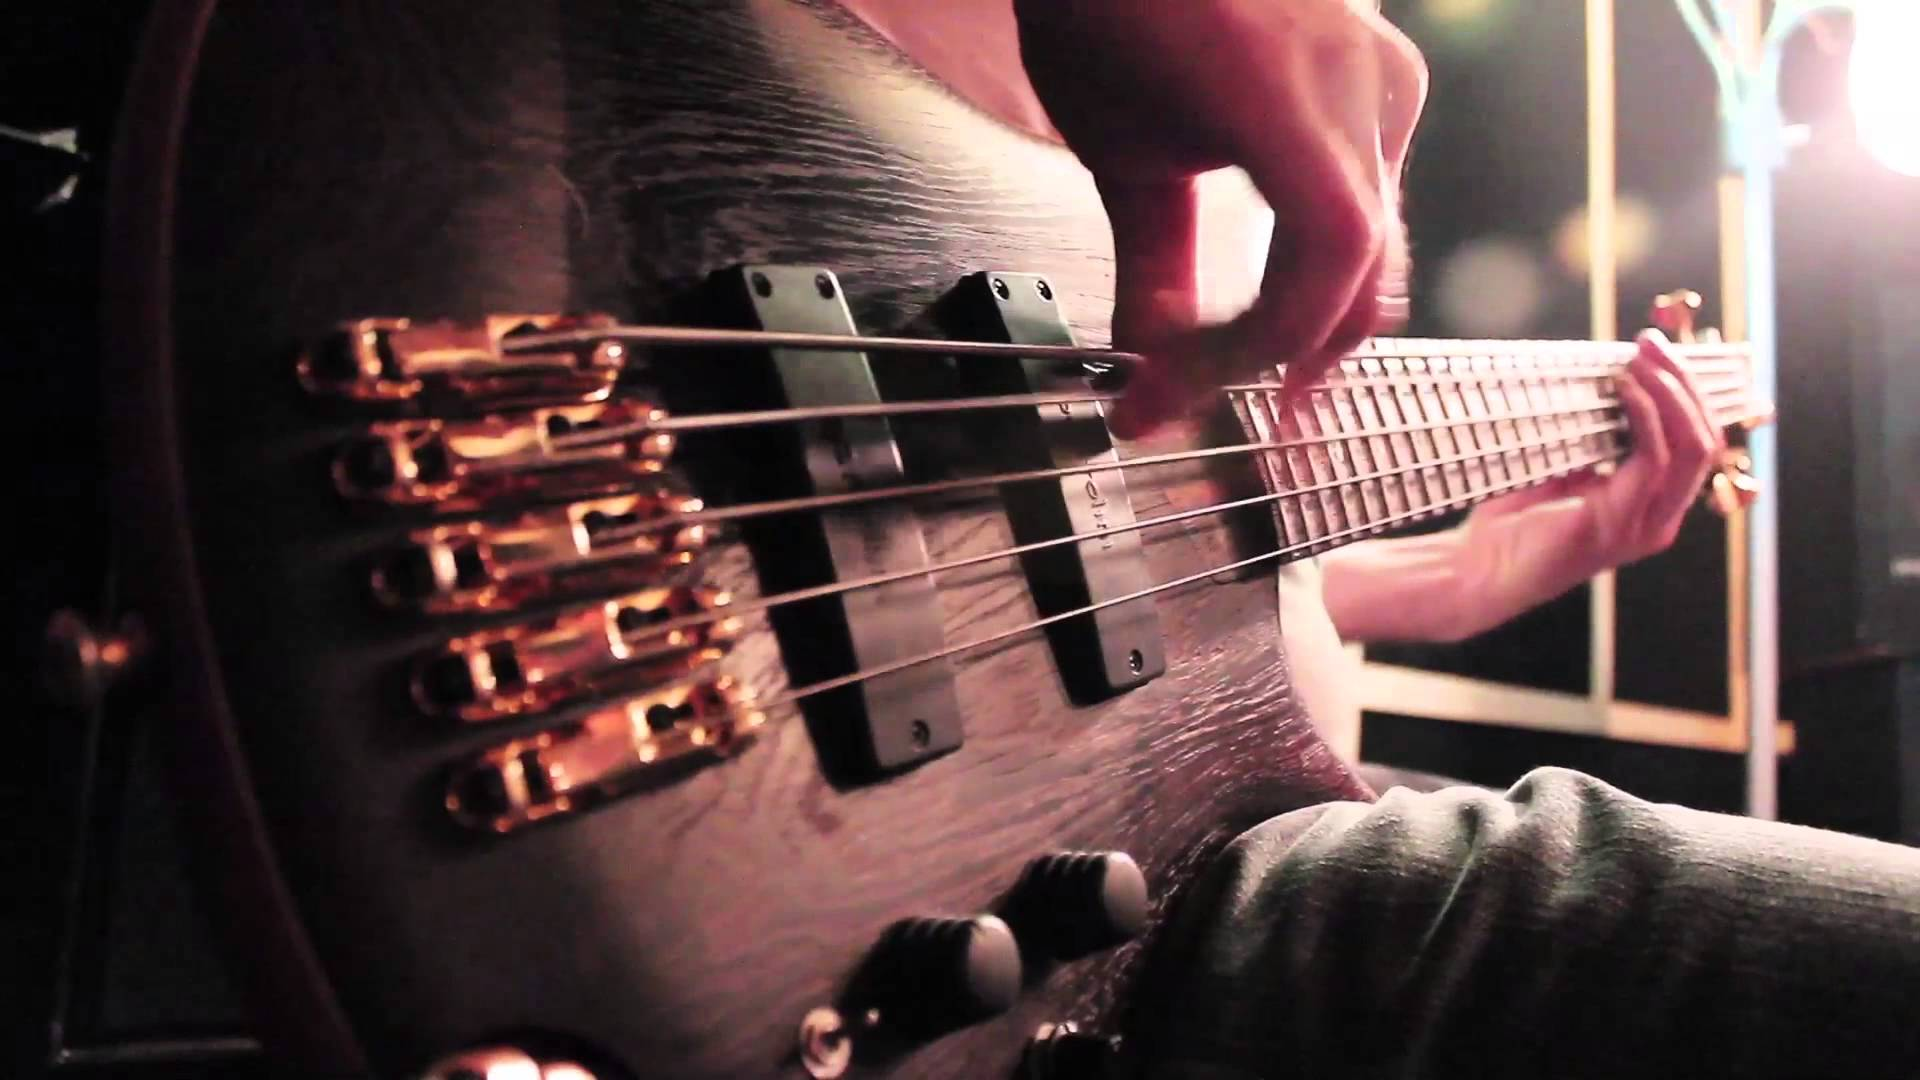 Battlecross 'Rise to Power' behind the scenes 7 - Bass Part 1